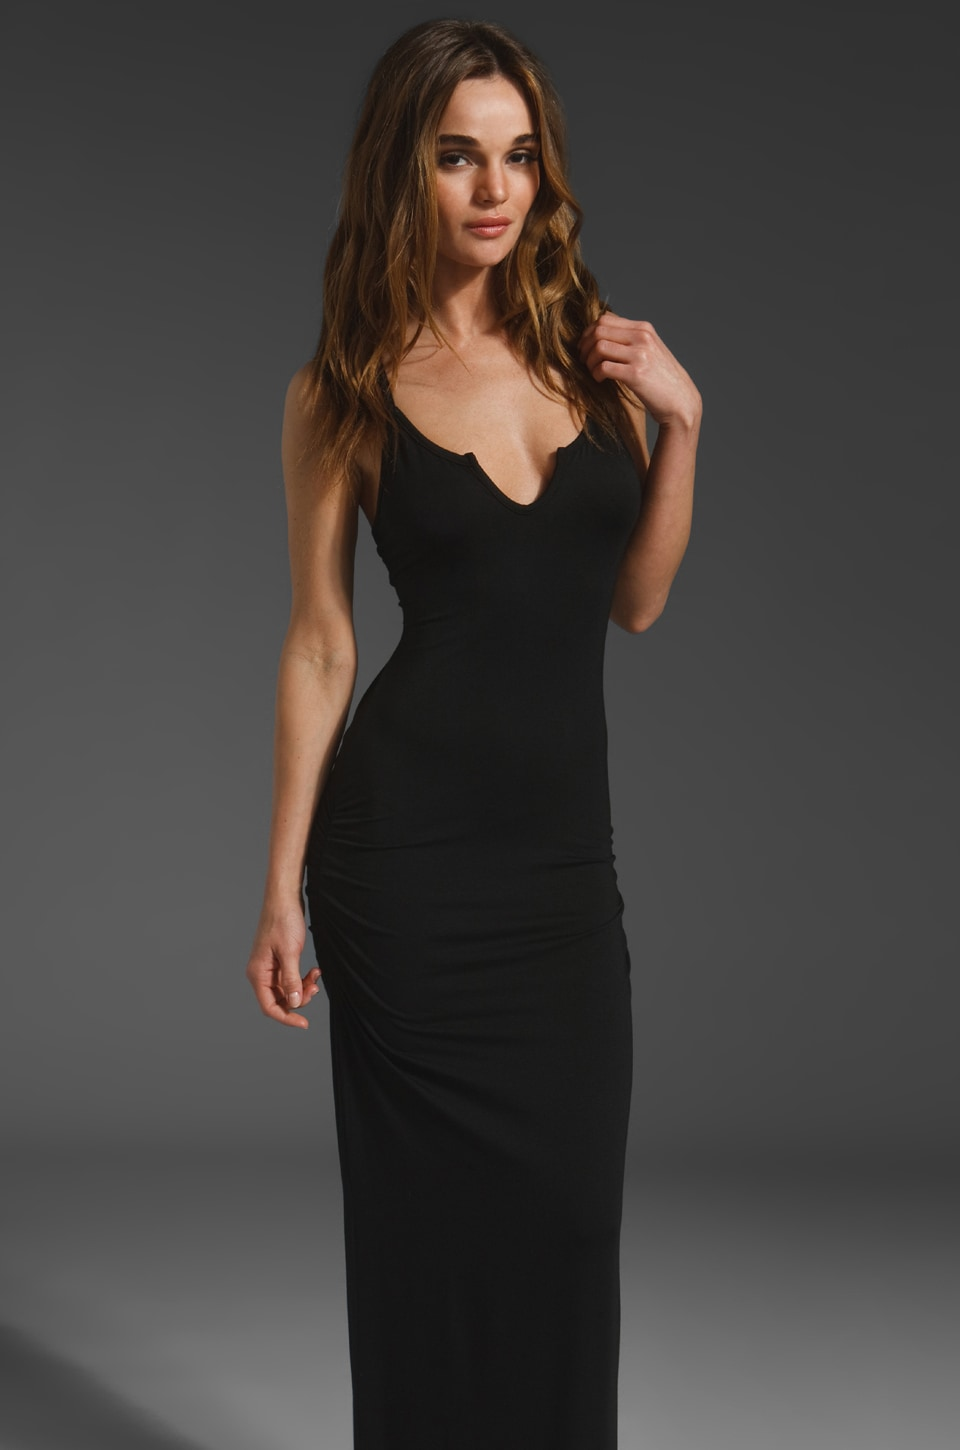 Kain Summer Dress in Black